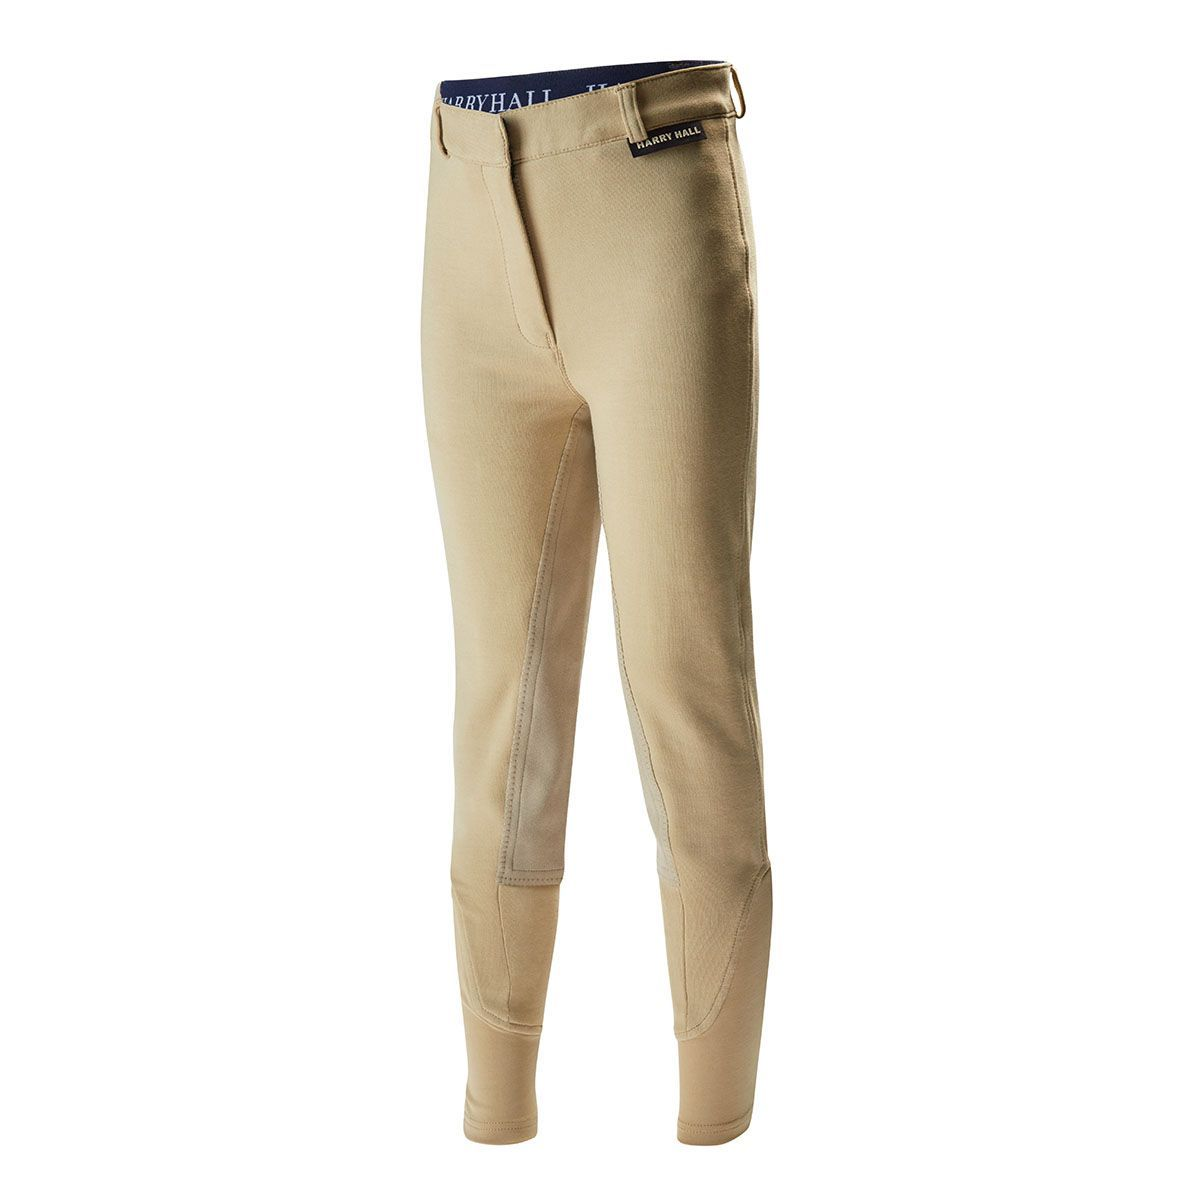 Harry Hall Huxley Junior Breeches